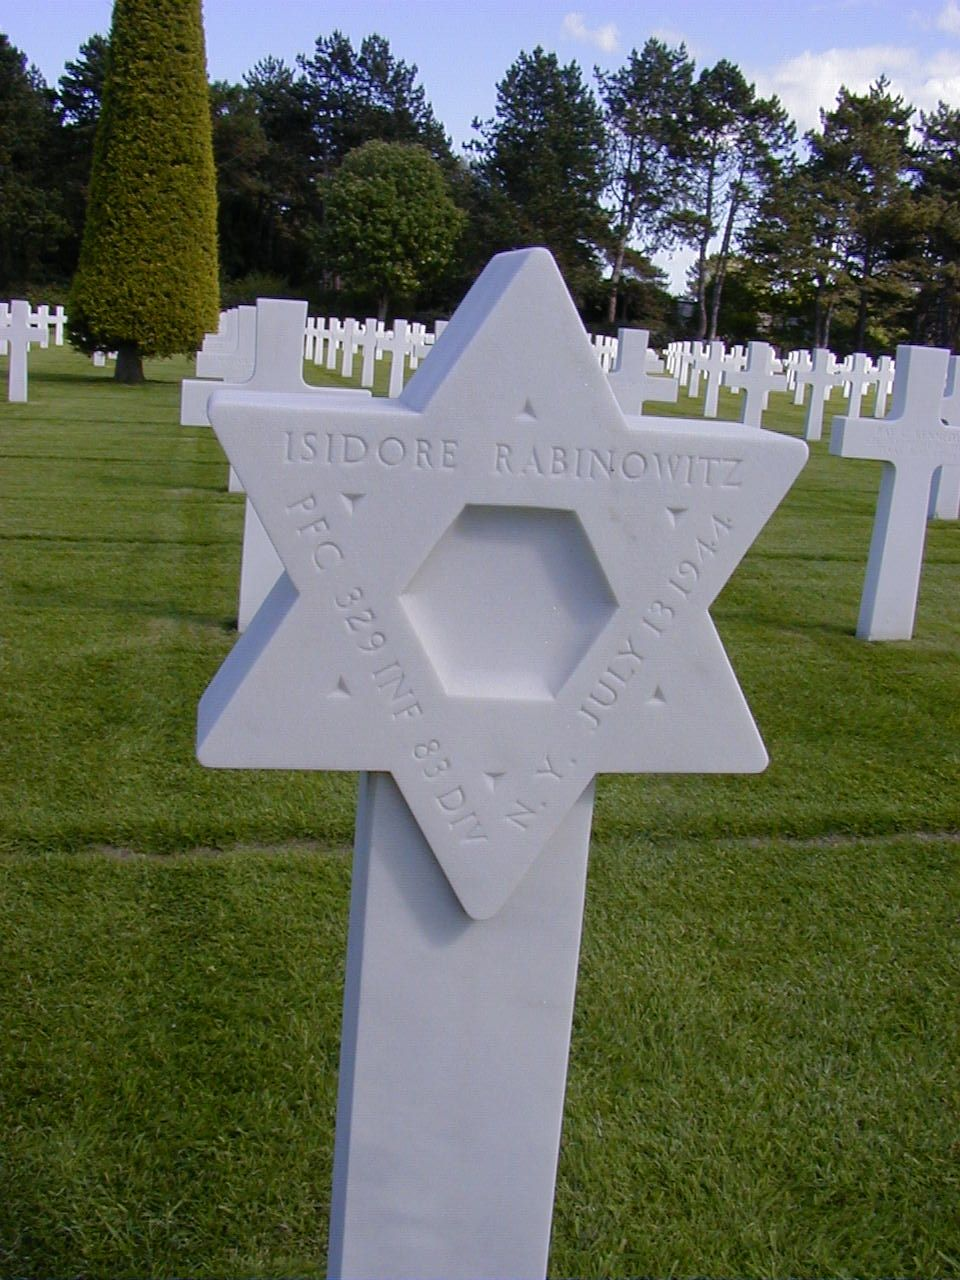 The American cemetery at Colleville sur mer over Omaha beach has 149 stars of David out of 9388 graves.  #normandy #dday #battle of normandy